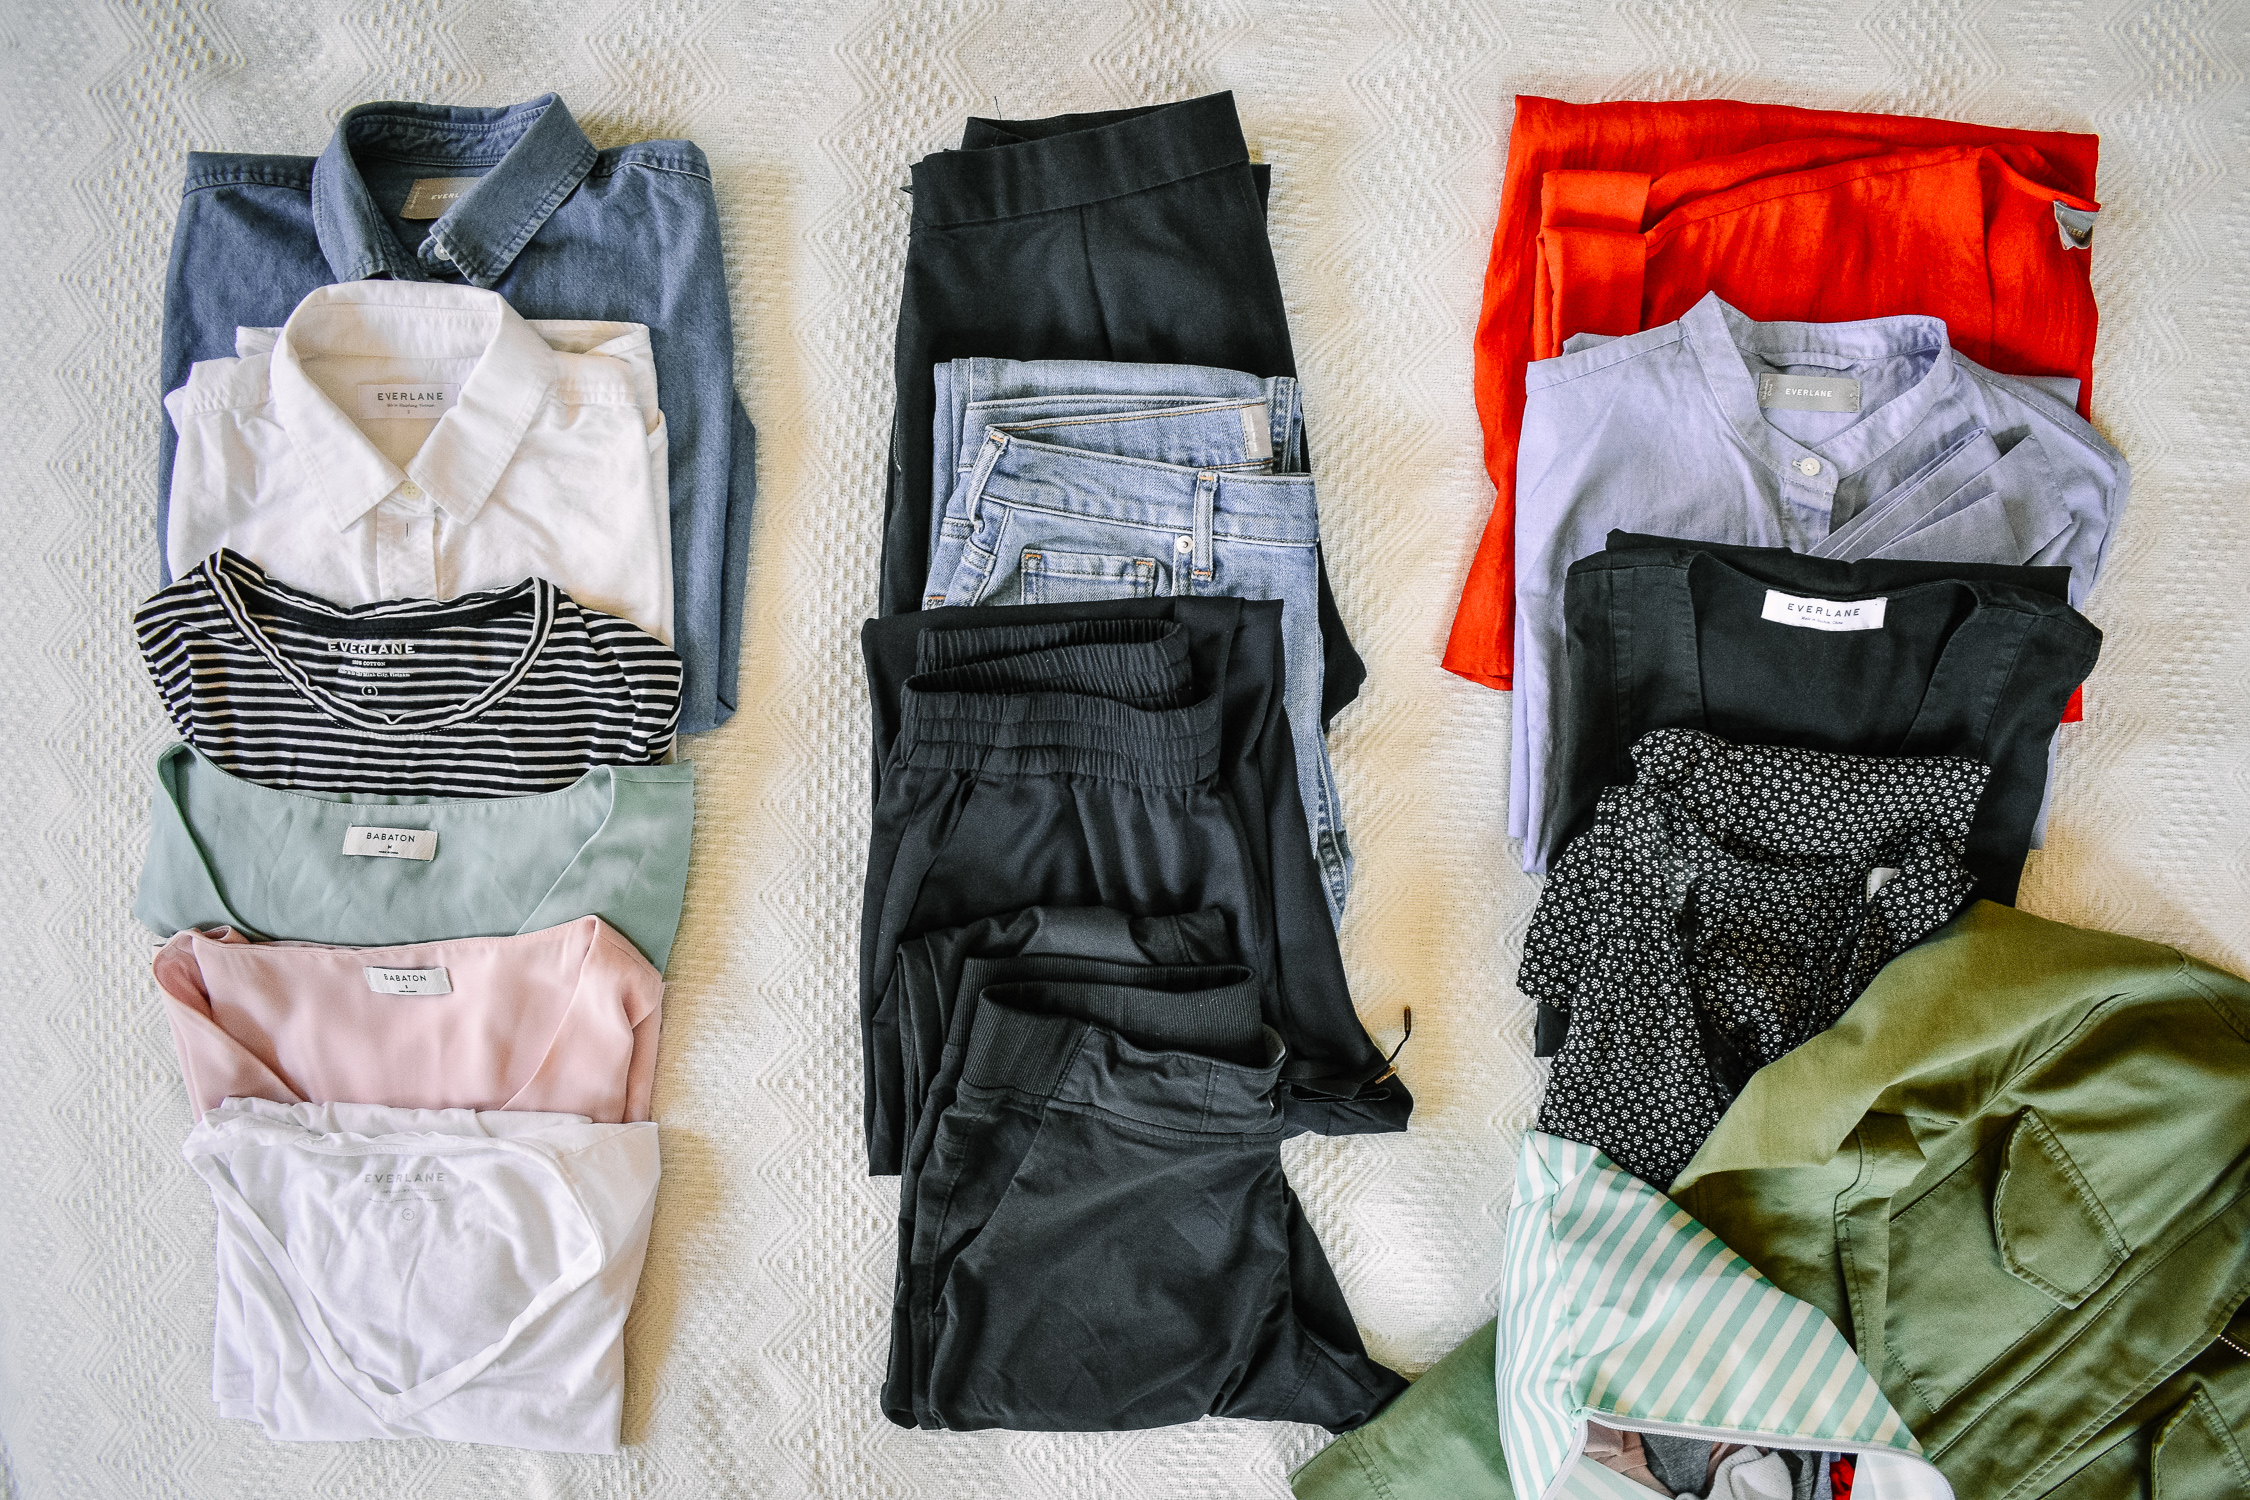 Clothing living from a duffle bag